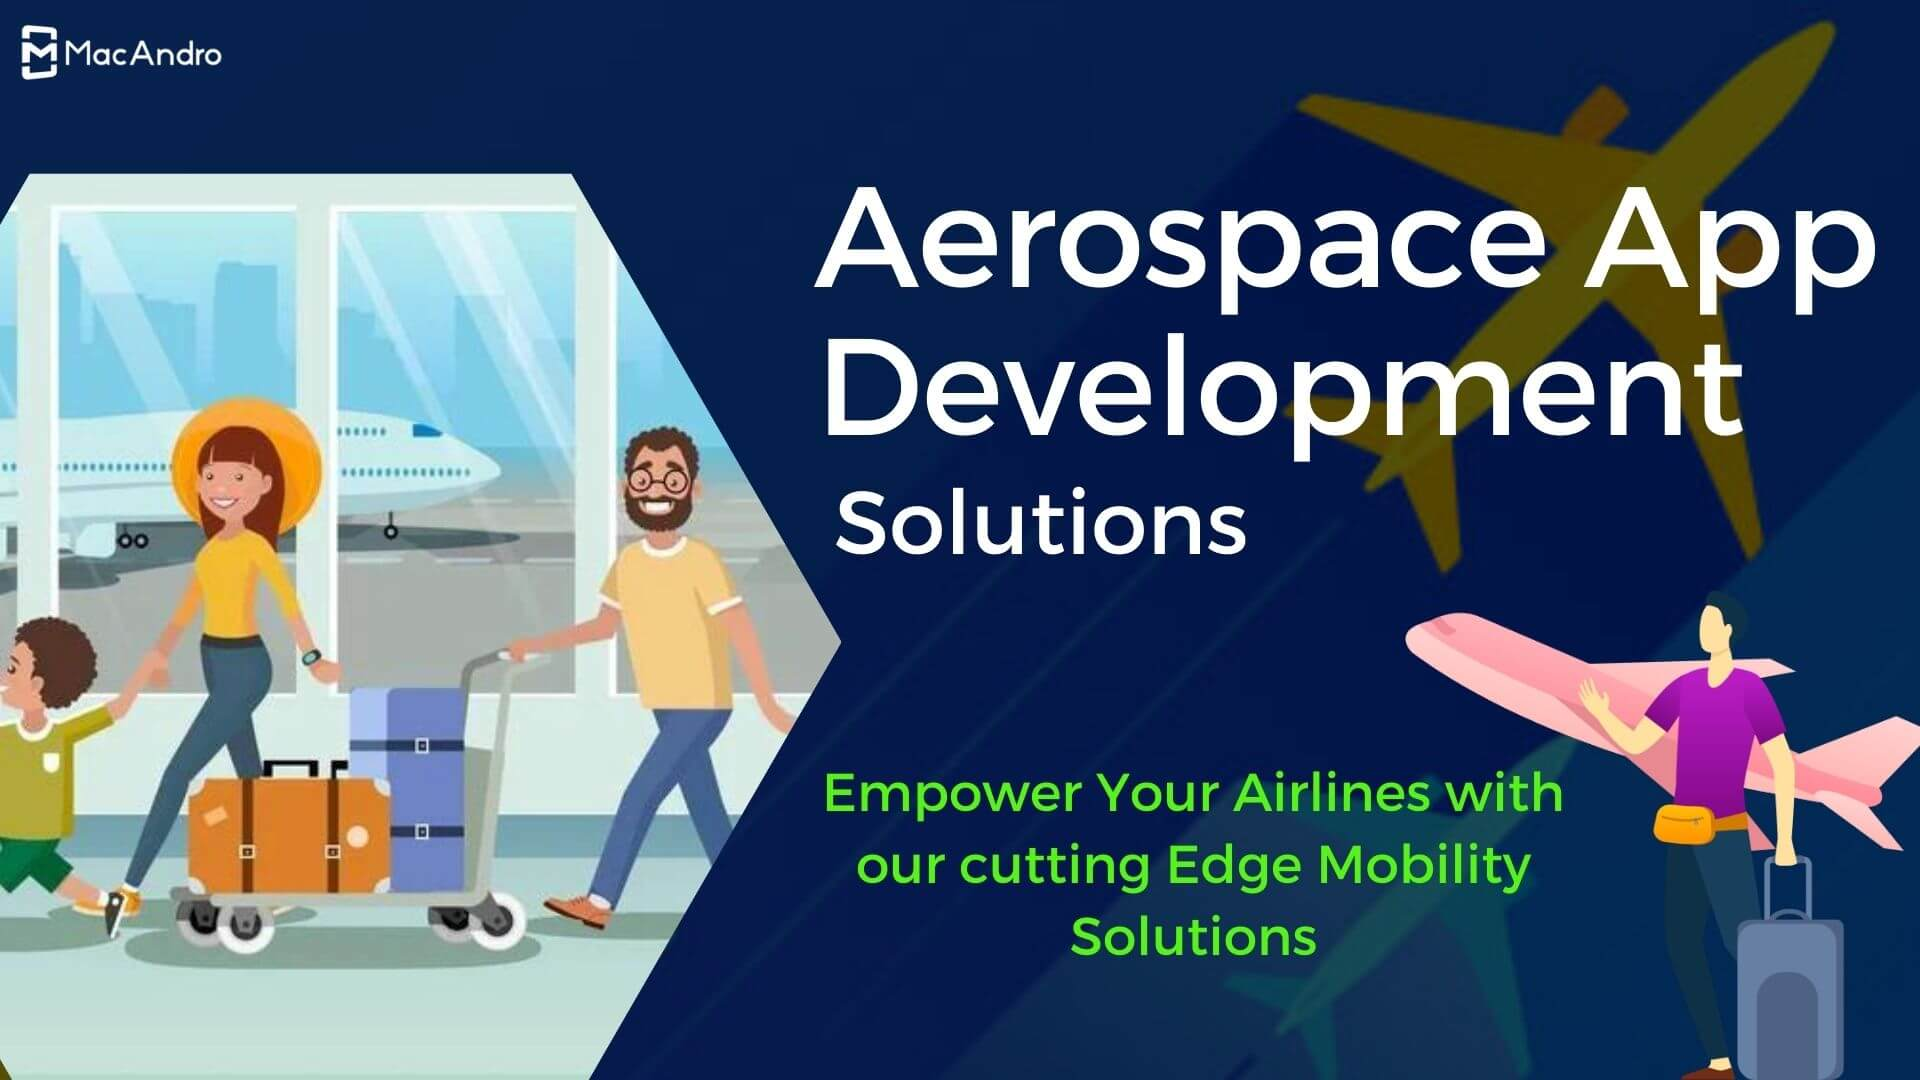 Aviation App Development - Make Your Airlines Fly High with Our Mobility Solutions